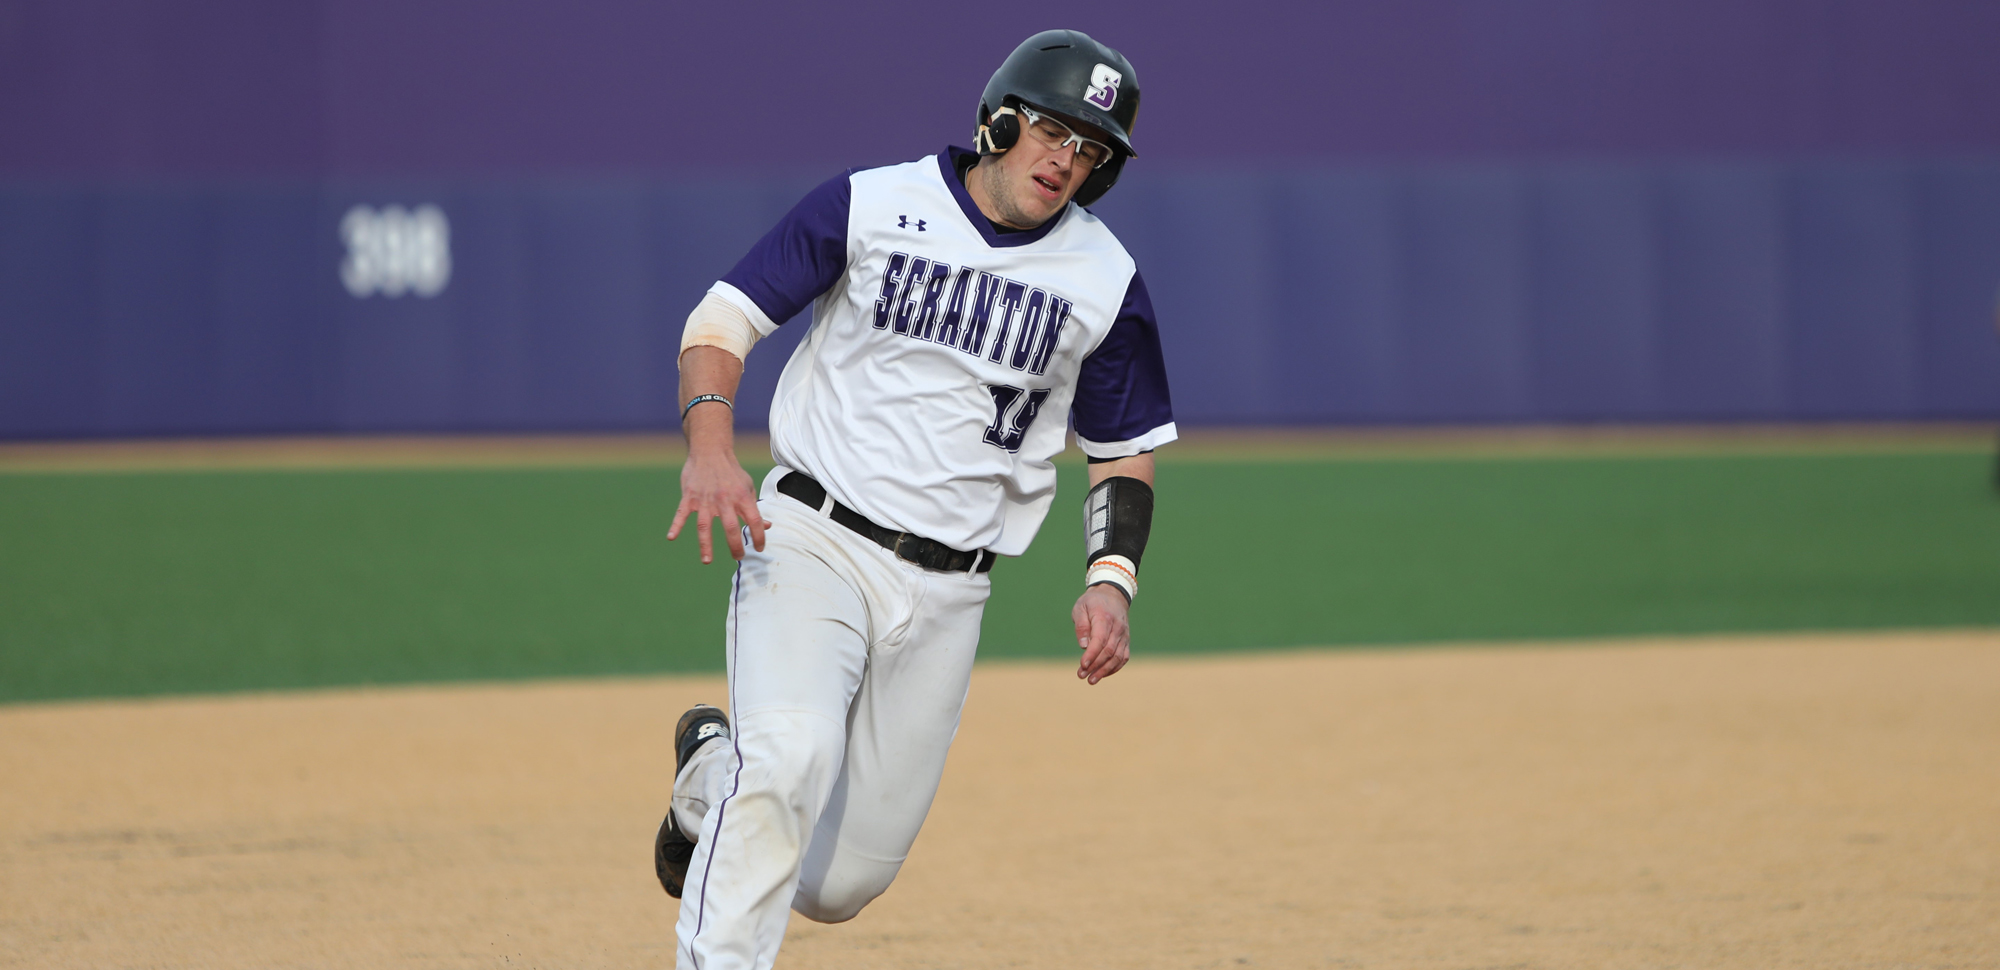 Junior Kevin Haag went 3-for-5 with two doubles and two RBI in Scranton's game one win over Catholic on Saturday. © Photo by Timothy R. Dougherty / doubleeaglephotography.com